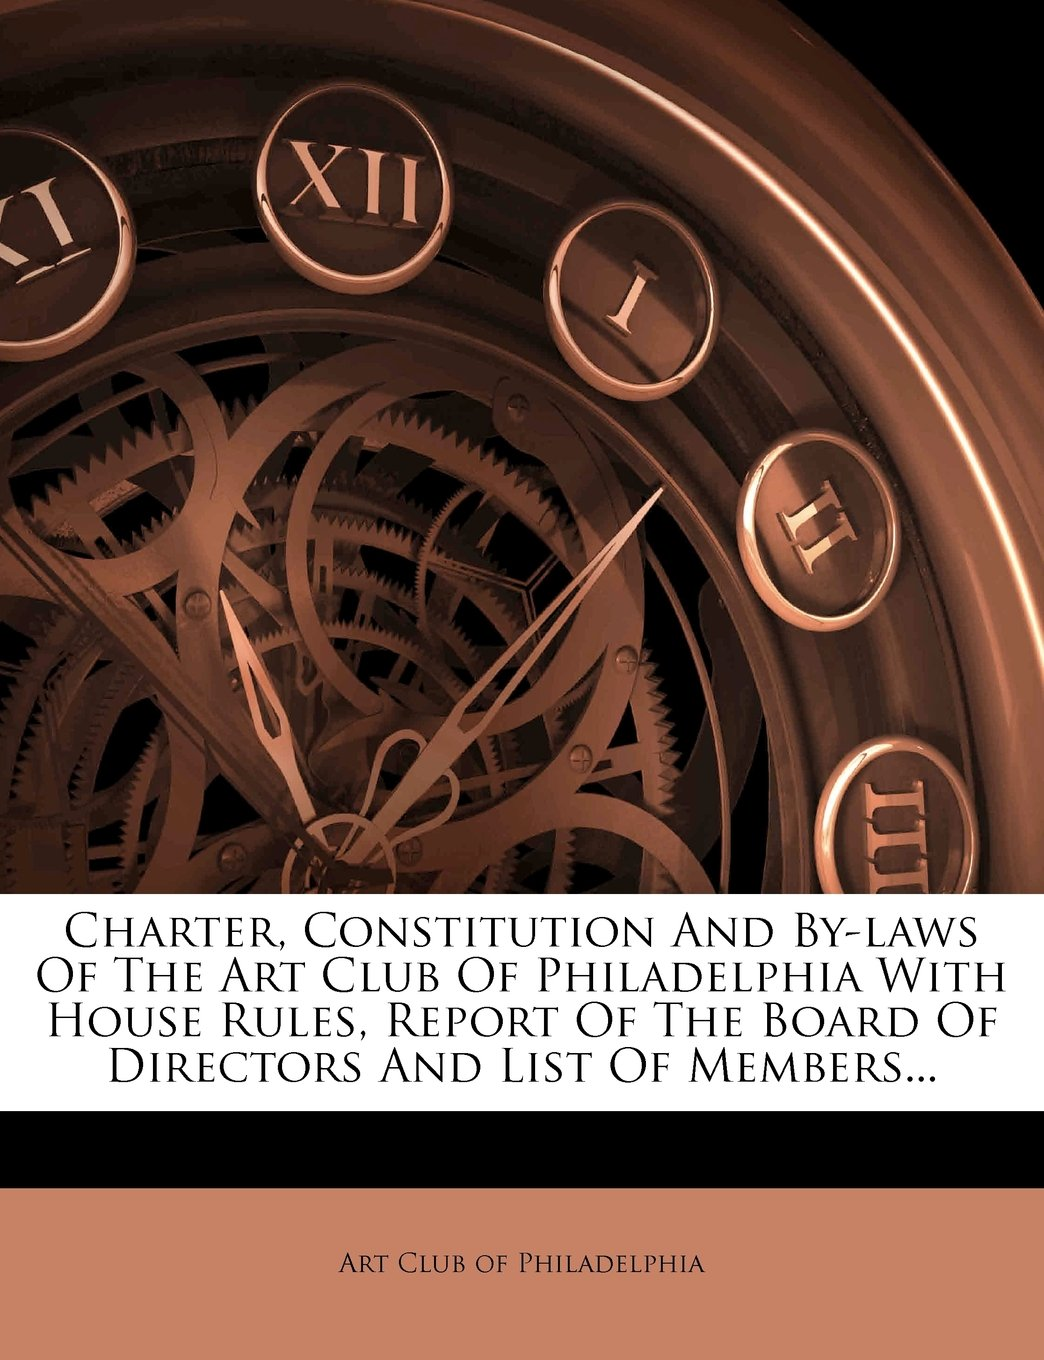 Charter, Constitution And By-laws Of The Art Club Of Philadelphia With House Rules, Report Of The Board Of Directors And List Of Members... pdf